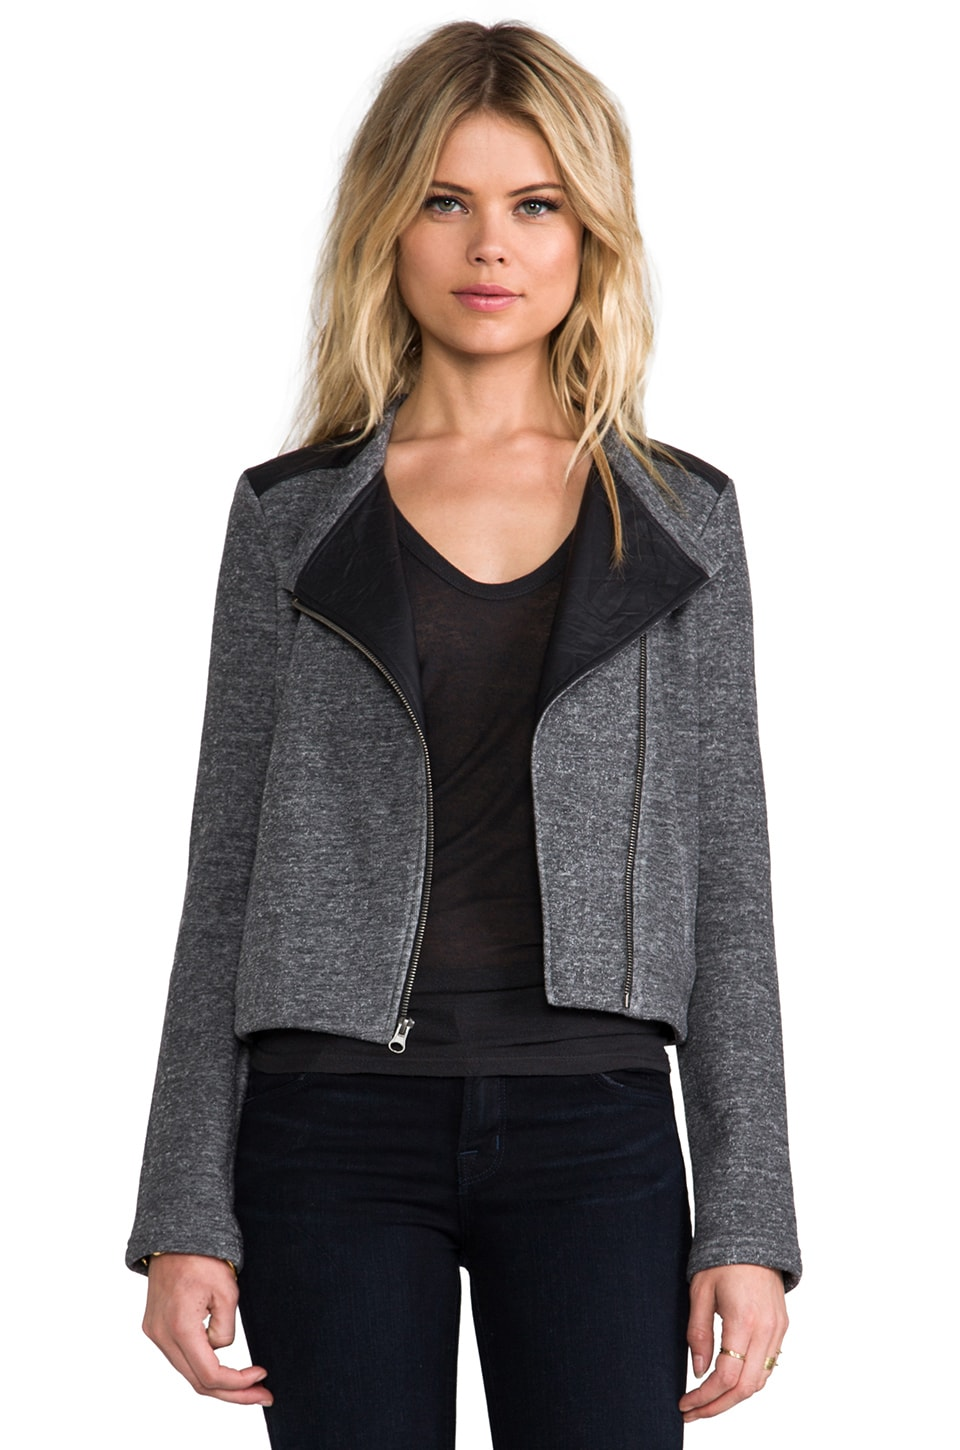 Lanston Moto Jacket w/ Leather Trim in Charcoal